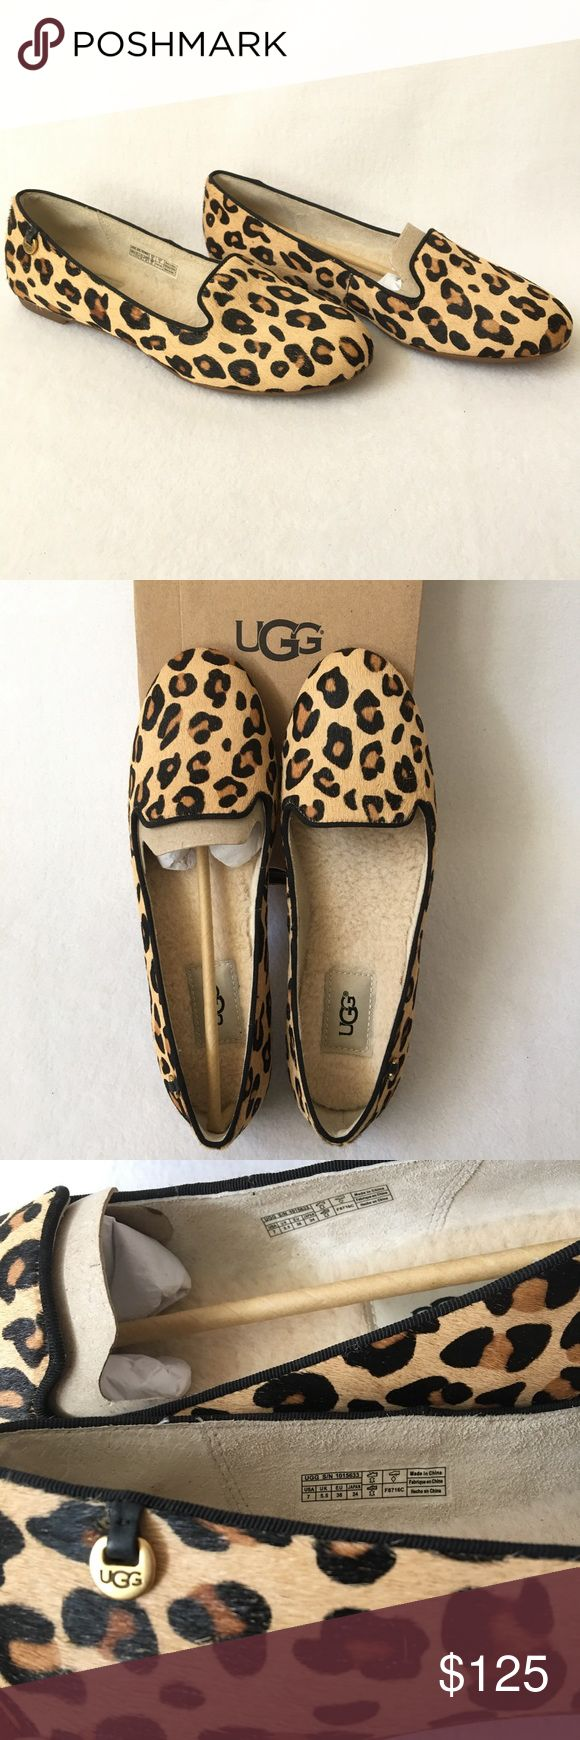 Authentic UGG Leopard Shoes 100 Authentic. Gorgeous calf hair leopard shoes from UGG. Lightweight & very comfortable. Size 7. New, never used, tag attached to the box. PRICE FIRM. UGG Shoes